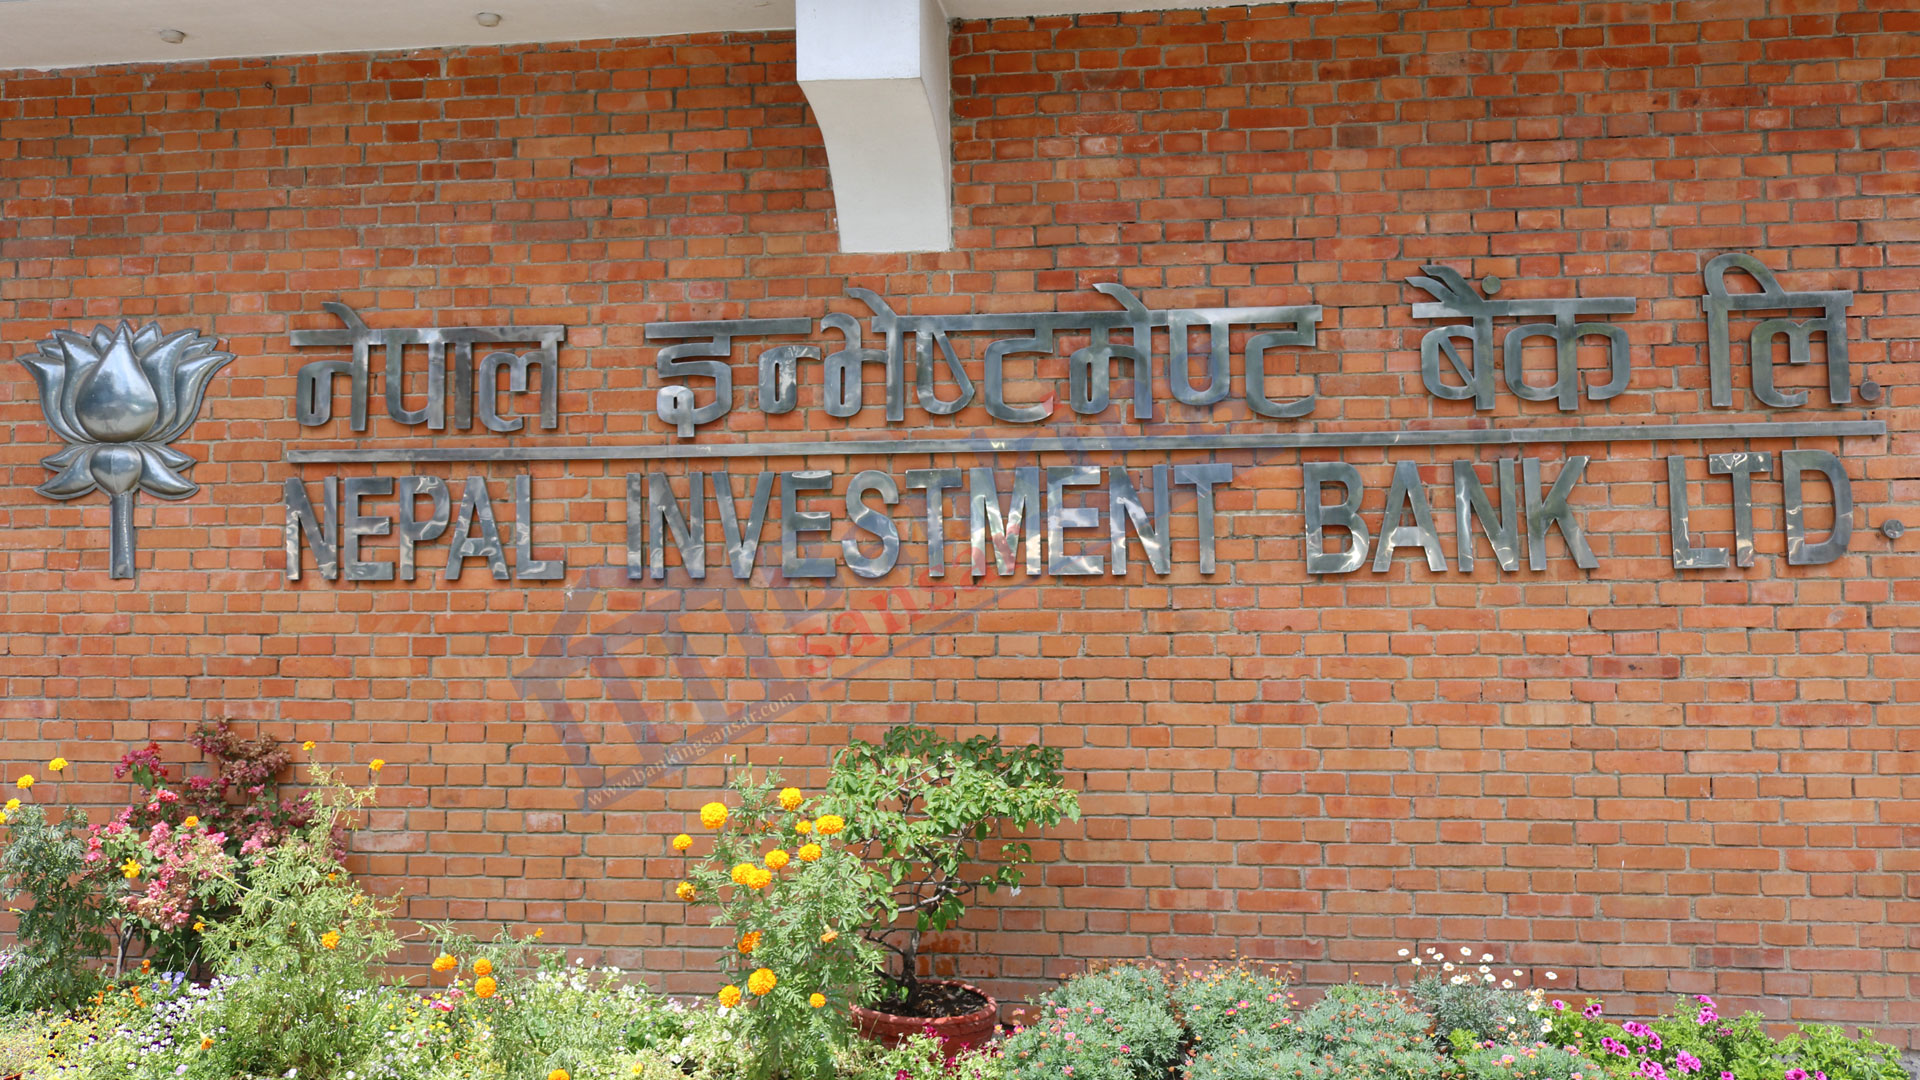 Nepal Investment Bank